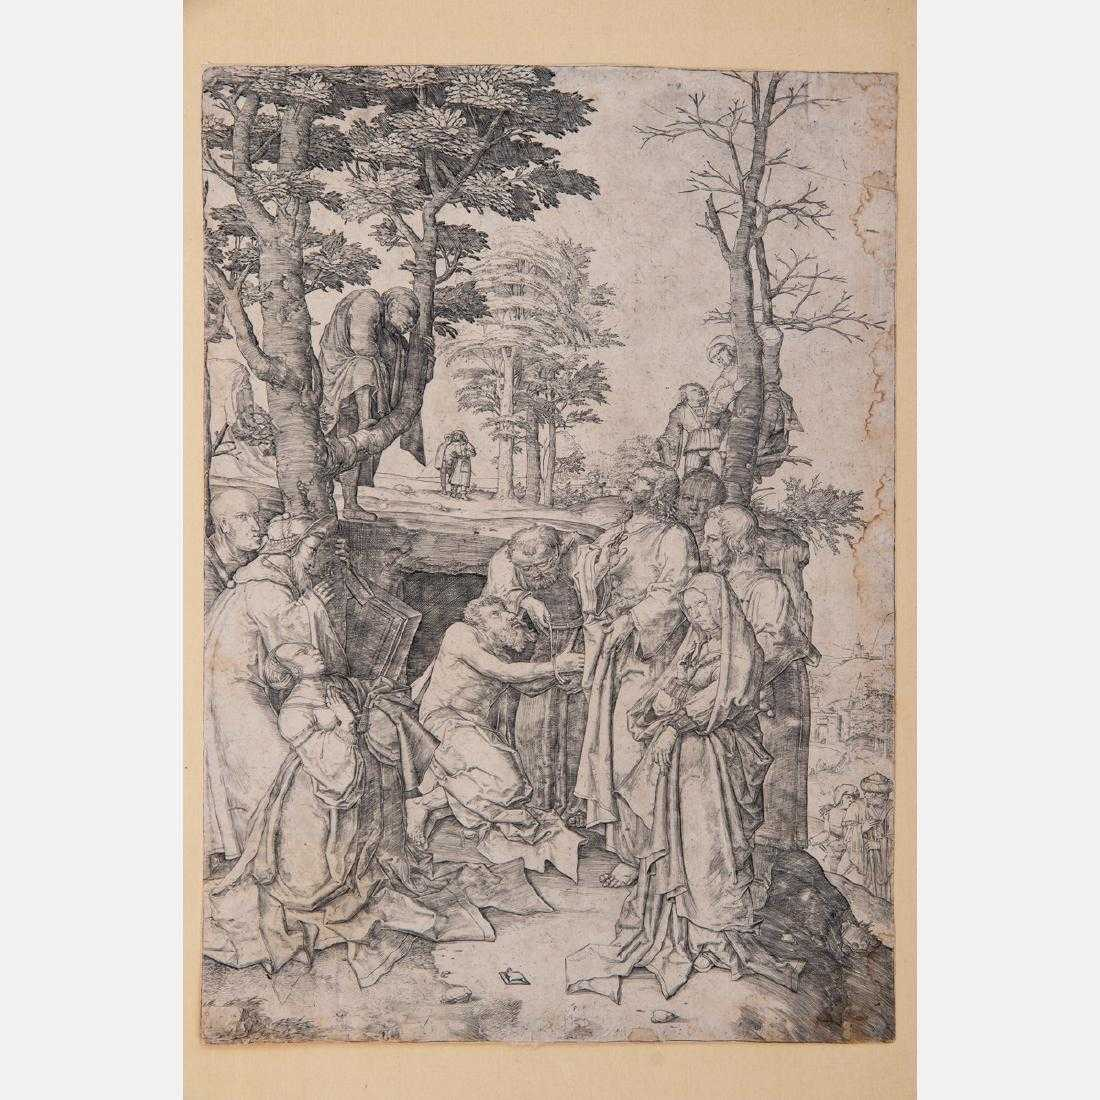 Engraving on laid paper by the Dutch artist Lucas van Leyden (1494-1533), titled The Praising of Lazarus (circa 1508), 11 ½ inches by 8 inches (est. $800-$1,200).